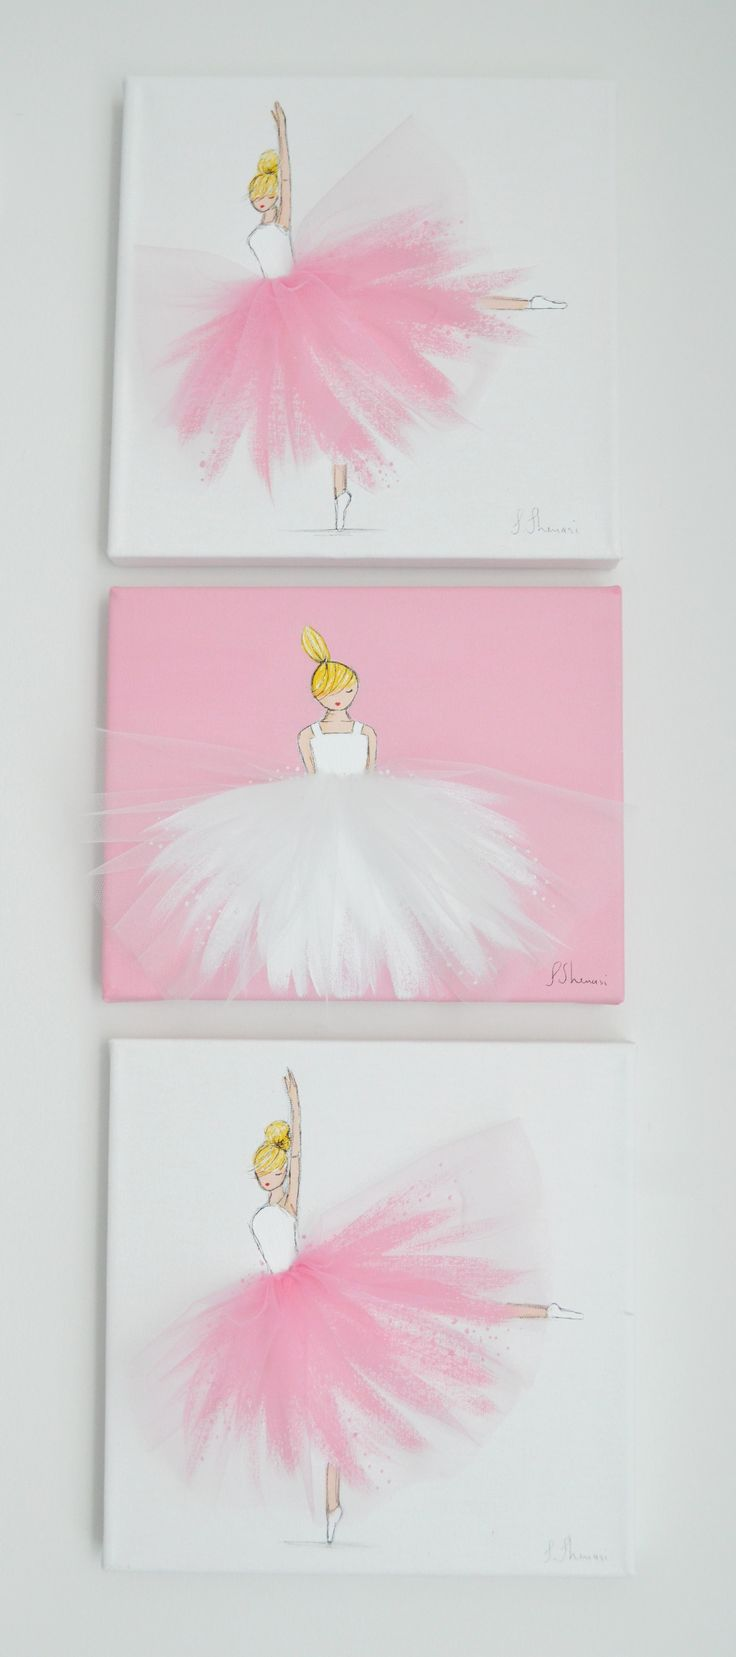 I think I'll use this idea and ad my own tulle to girls pictures for the room, so cute!